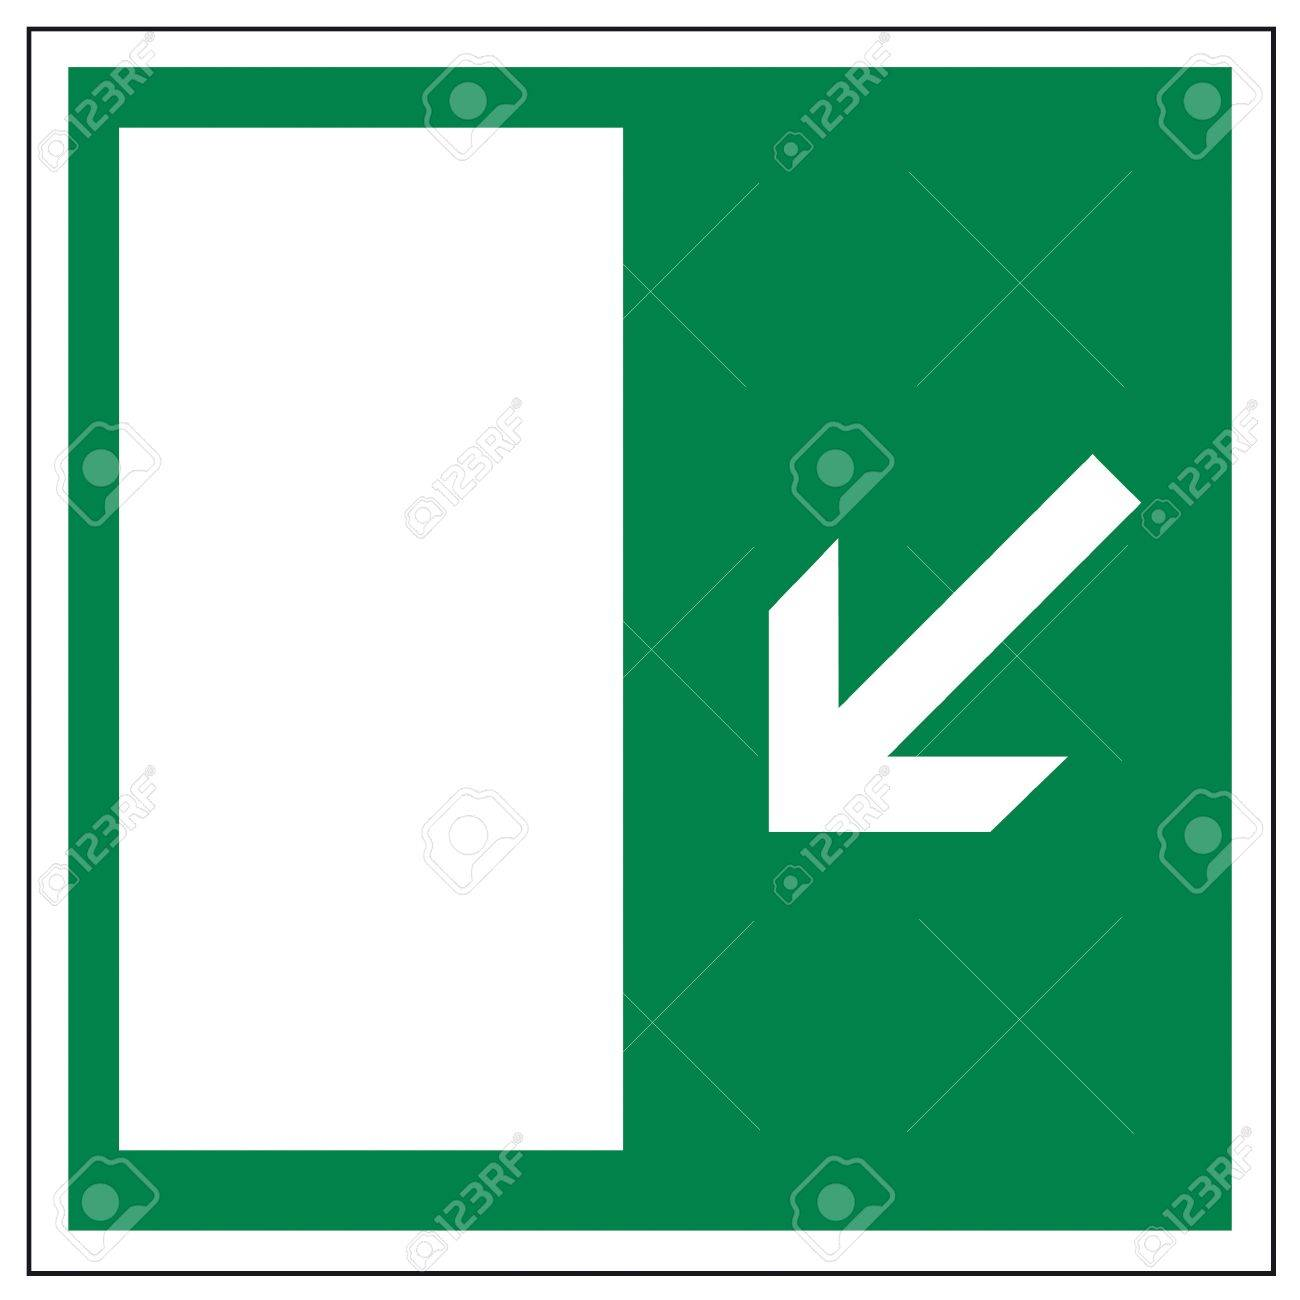 Rescue signs icon exit emergency arrow flush away Stock Vector - 14376908